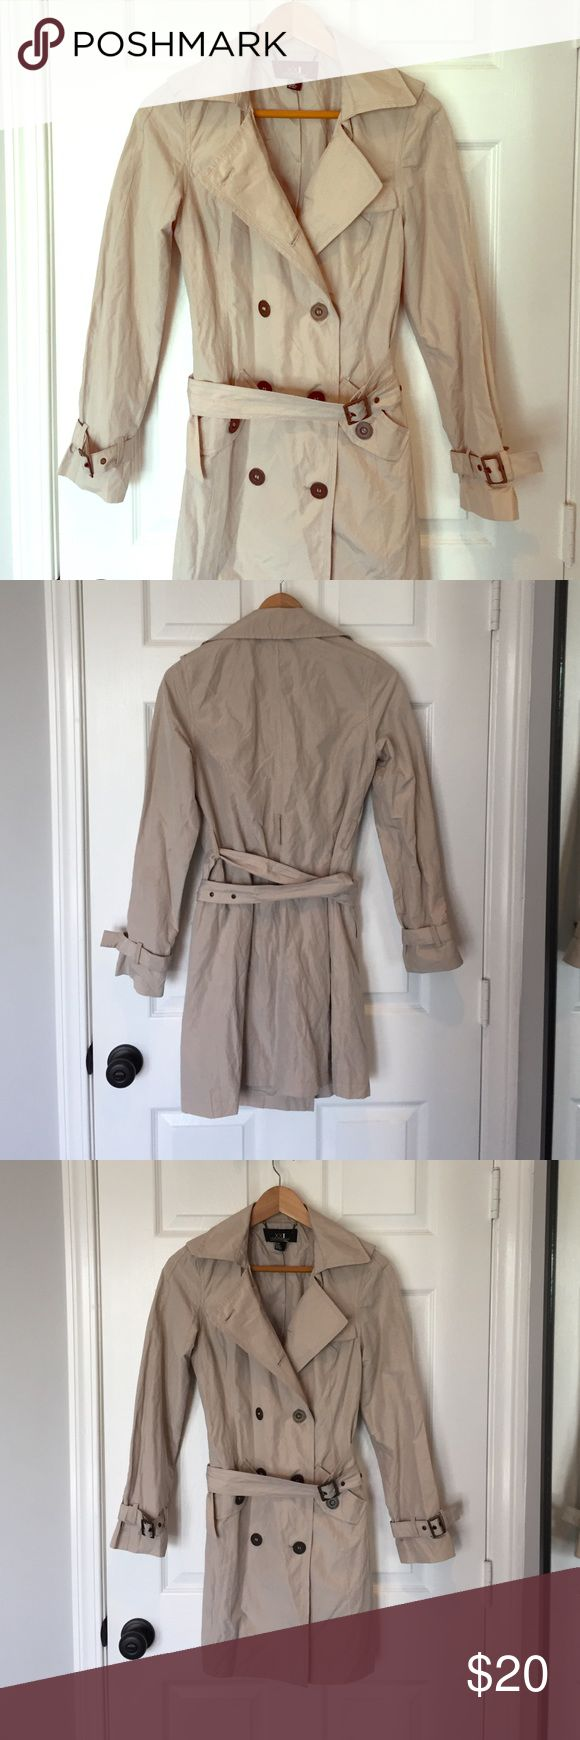 New Beige Women's Rain Coat with Belt & Buckle New beige women's rain coat. Never worn. Great condition. No defects. Forever 21. Size Small. Come with belt. Jackets & Coats Trench Coats